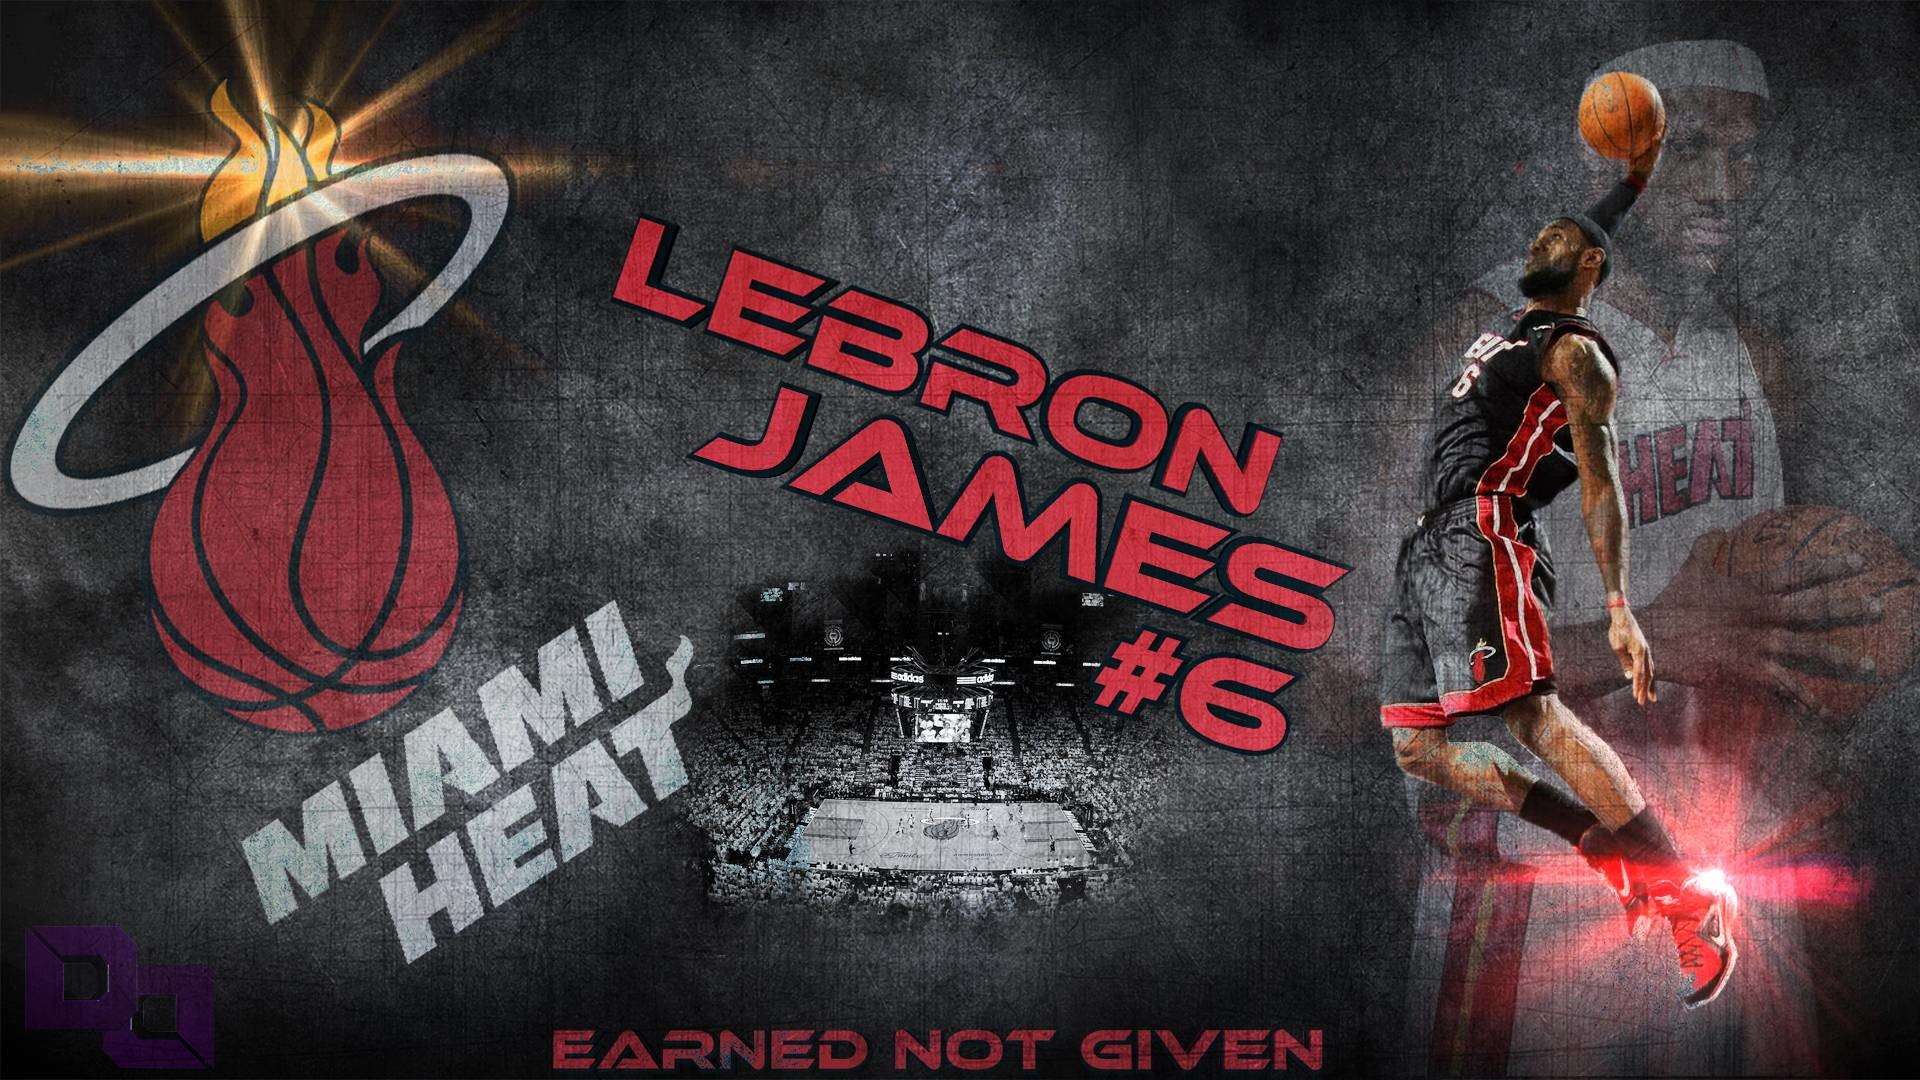 1920x1080 1152x864 - Lebron James Witness Wallpapers - Wallpaper Zone | nba .